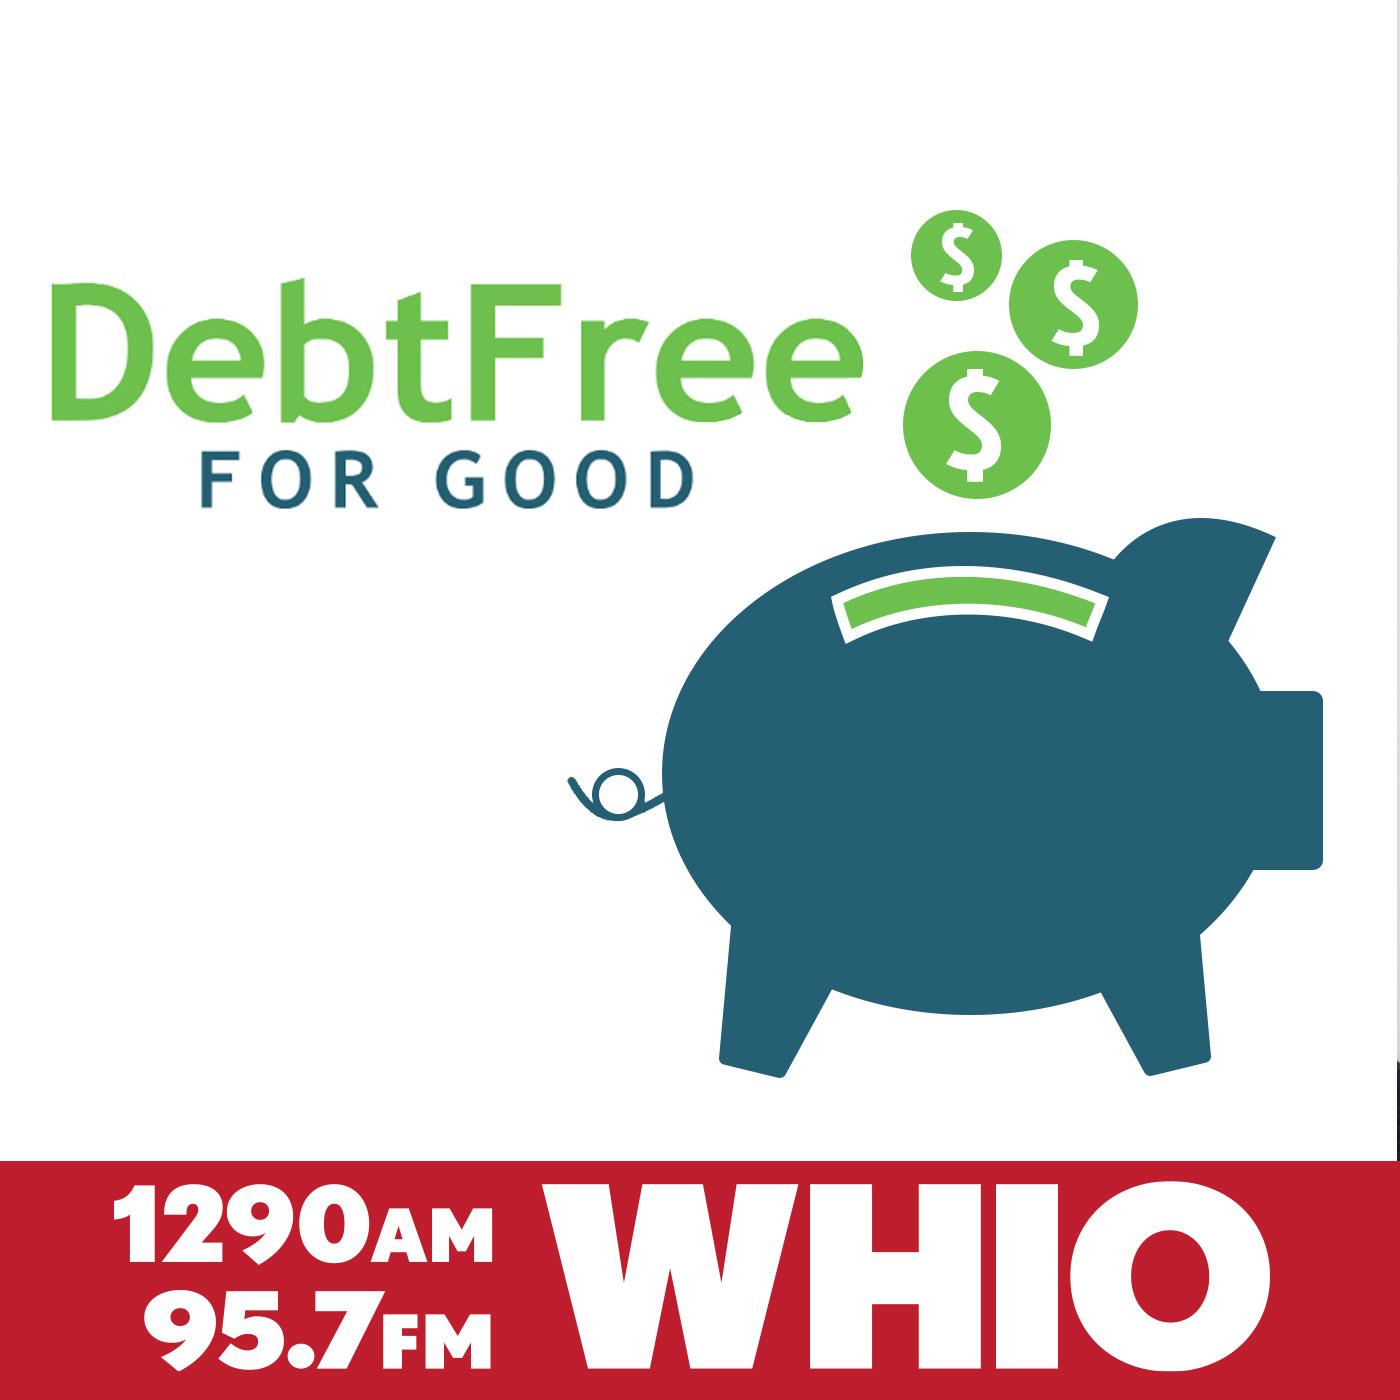 Debt Free For Good